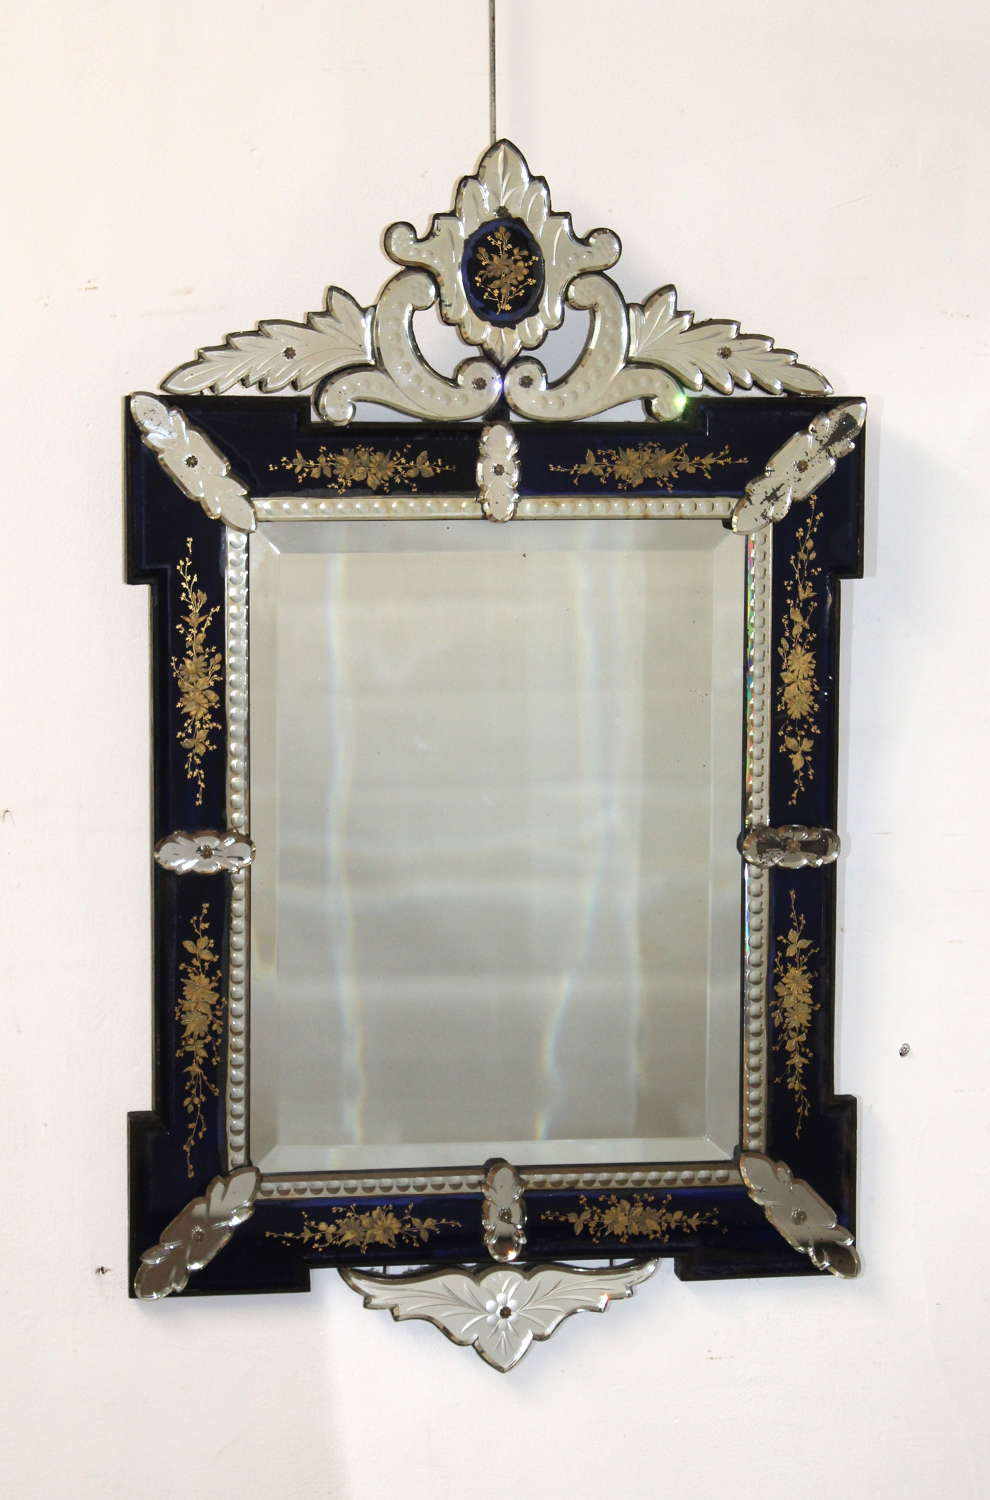 Antique decorative Venetian mirror with dark blue and gold frame